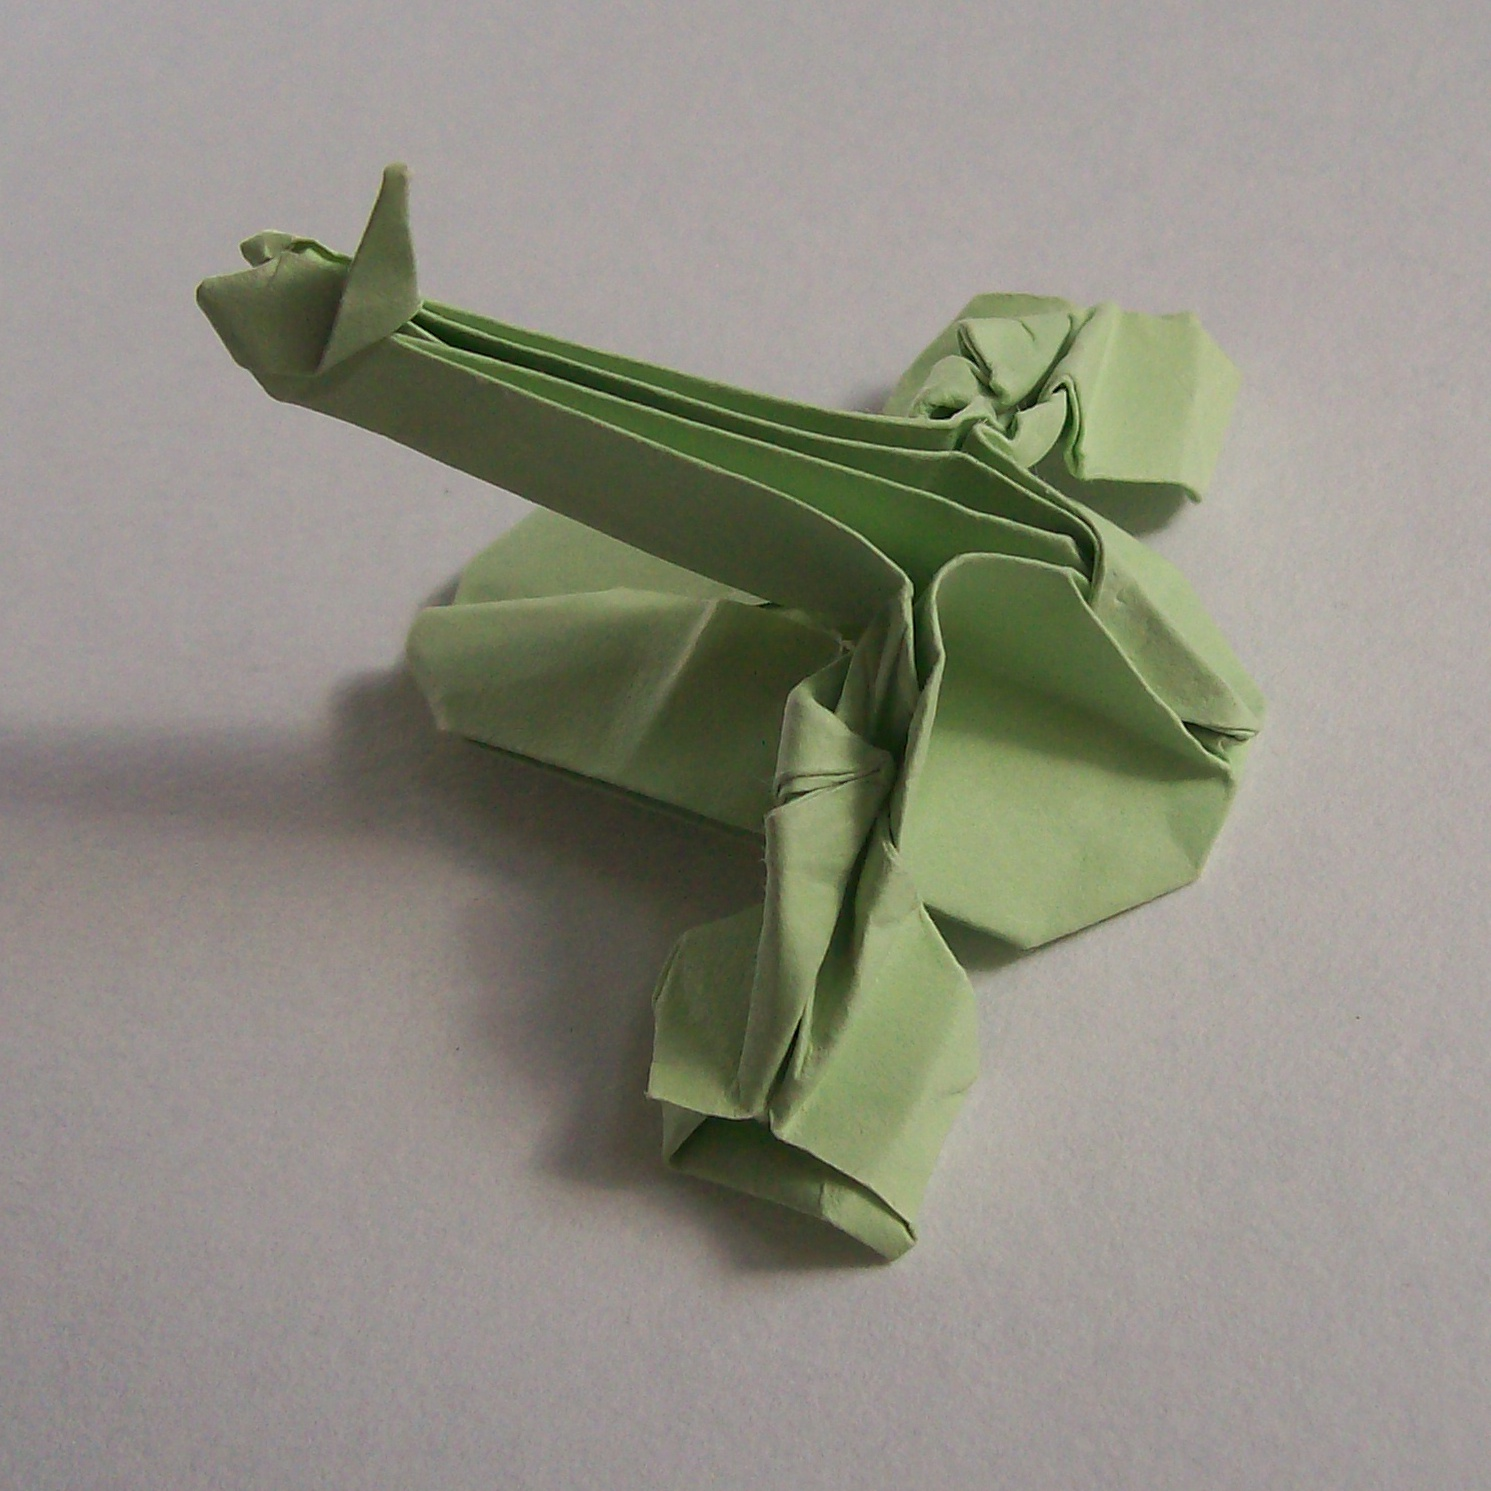 Star Wars Origami The Latest Updates And Events Going On At Www To Fold Mouse From Paper Diagram Of Themouse Naboo Starfighter Slave I